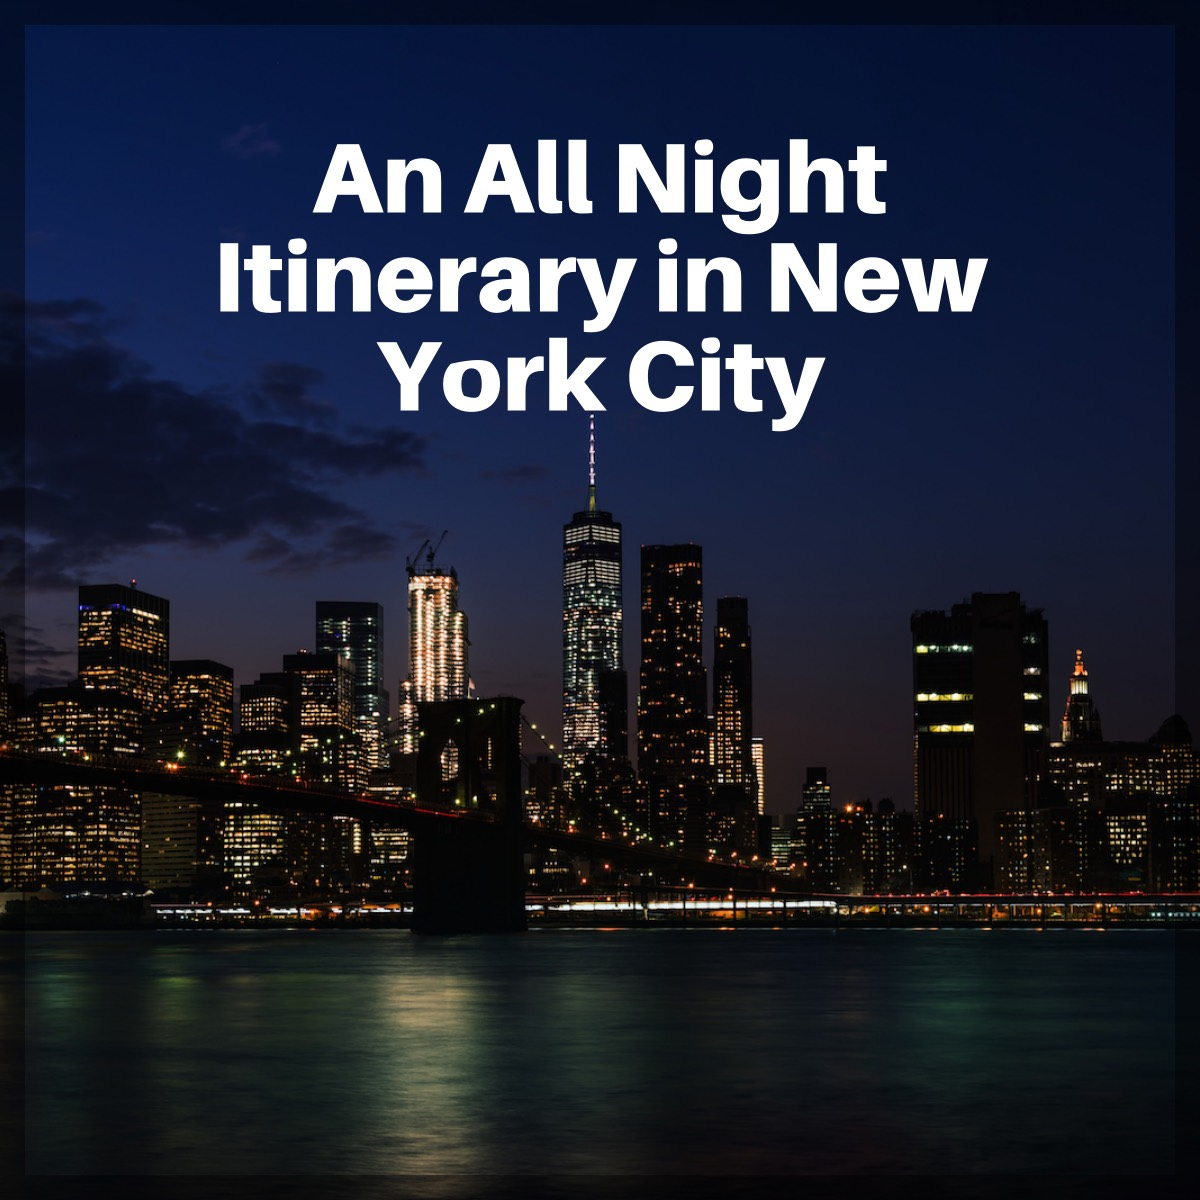 An All Night Itinerary in New York City